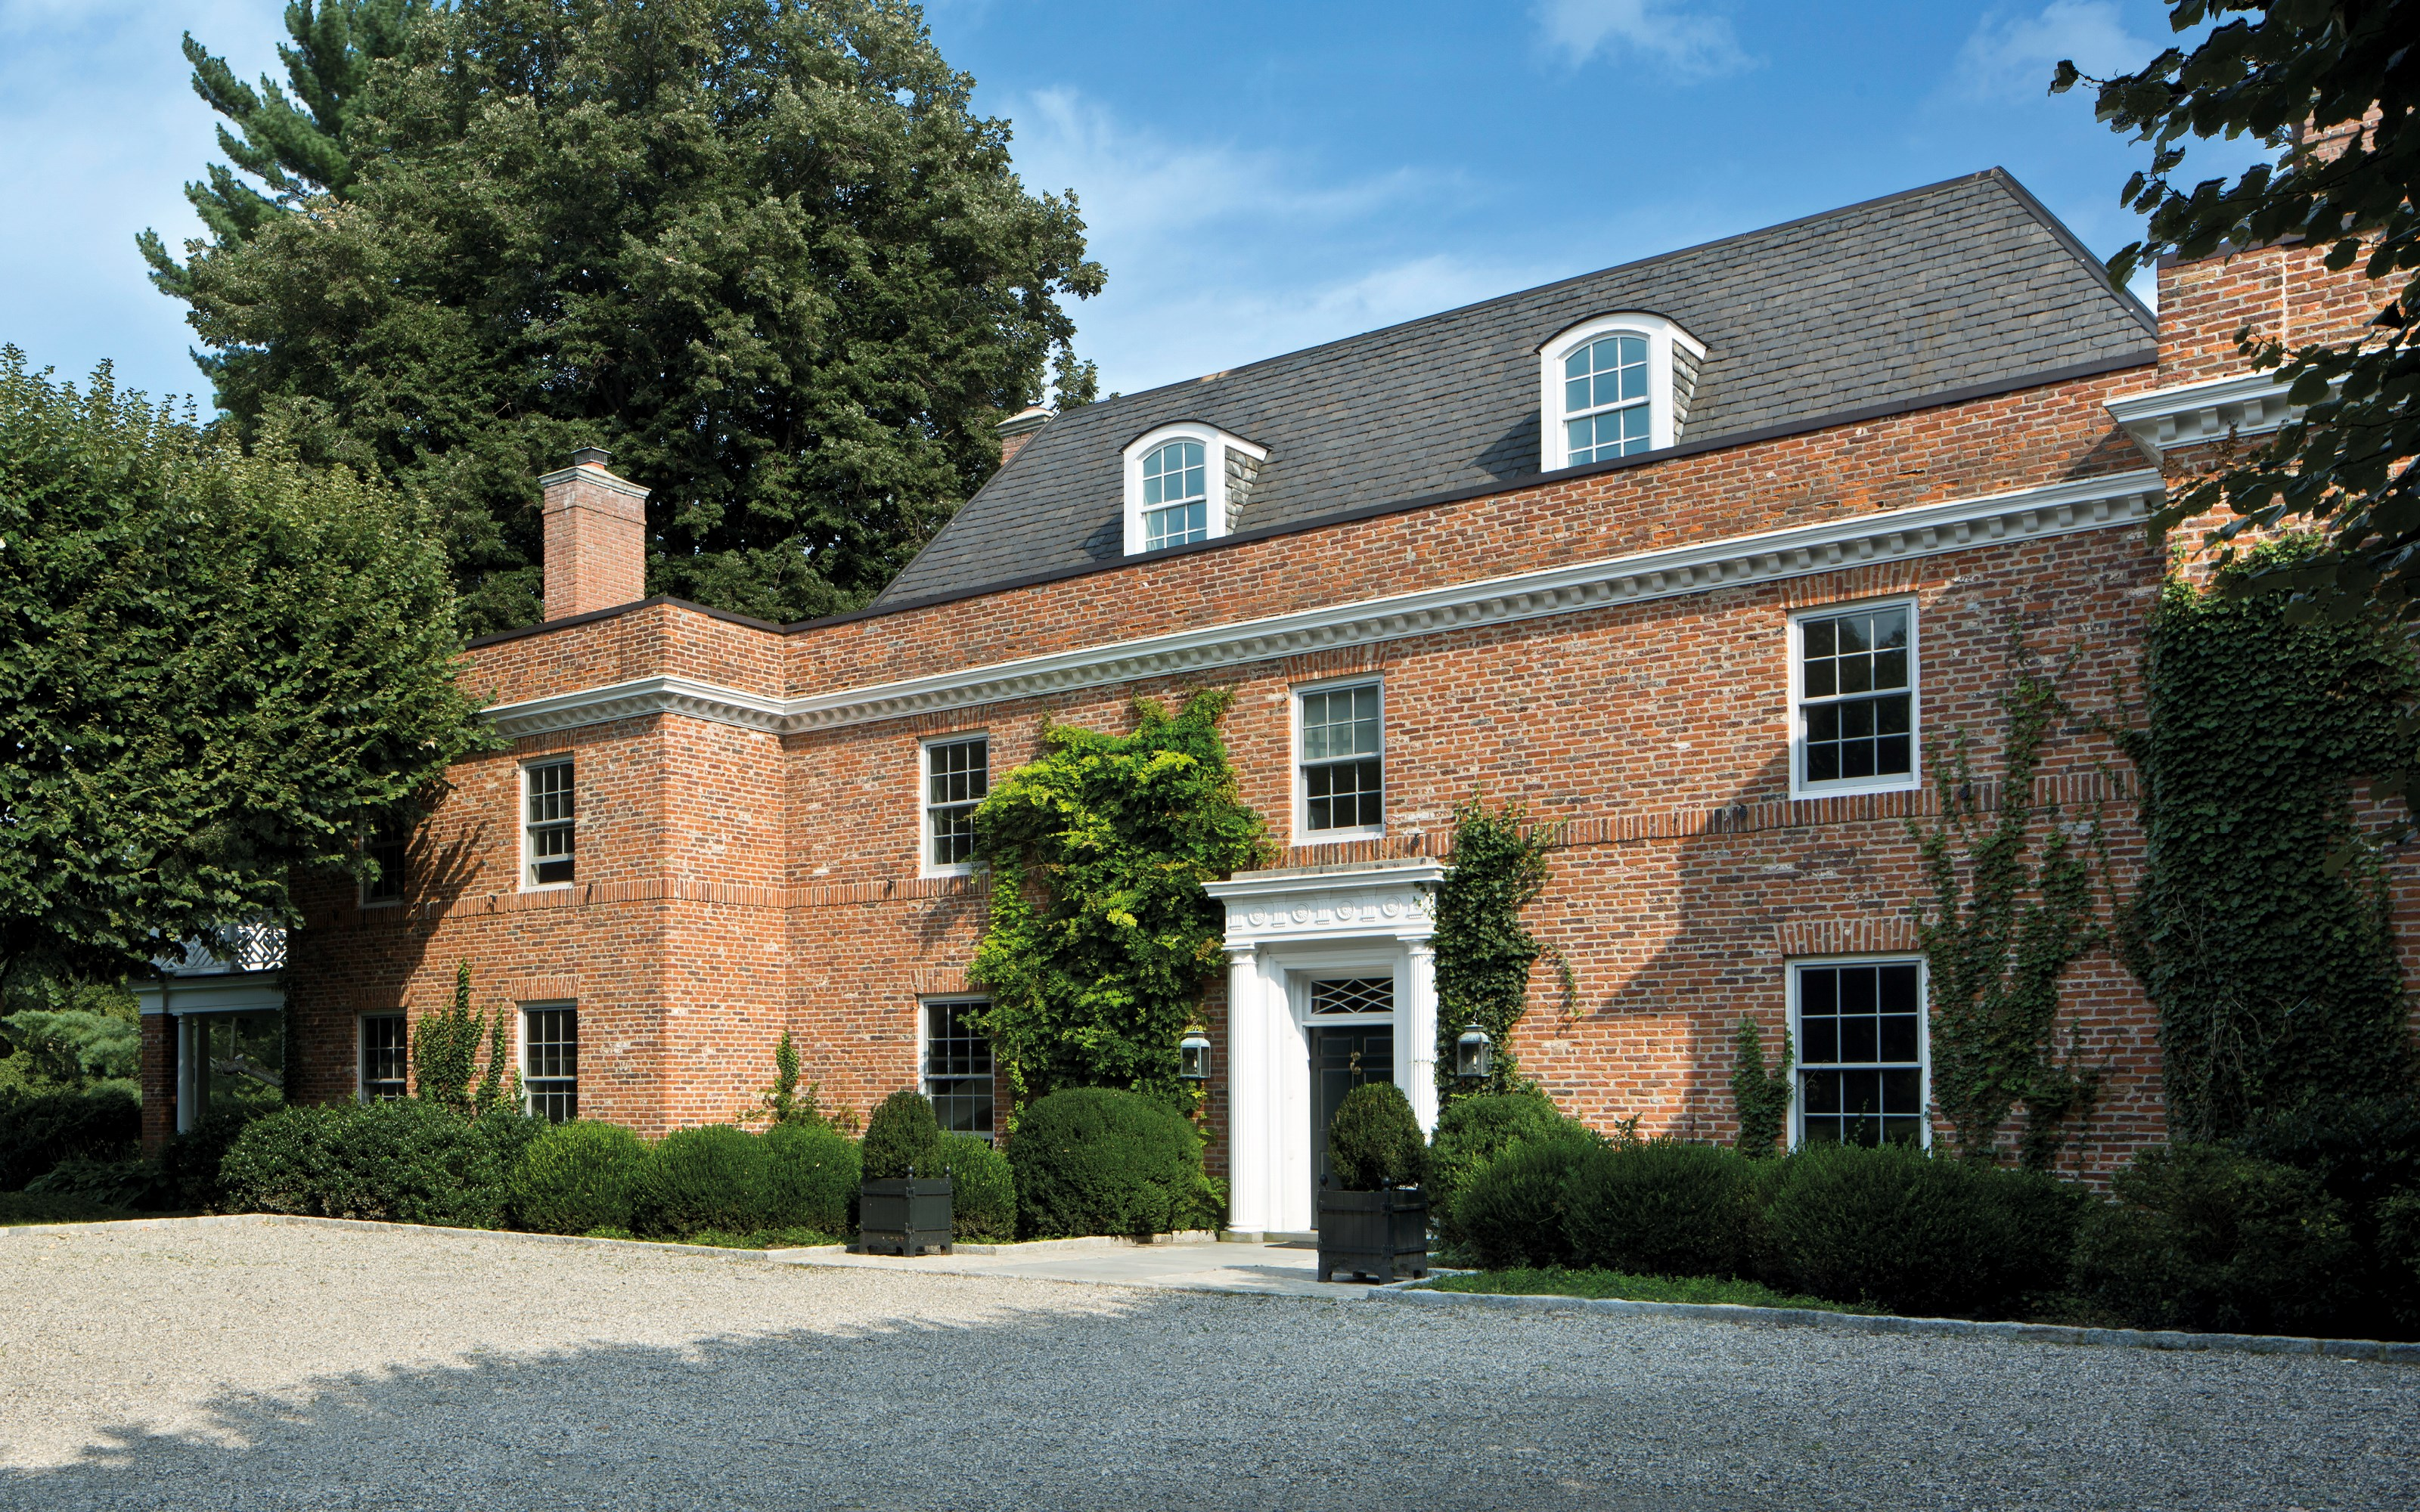 Little Cassiobury: The Collect auction at Christies